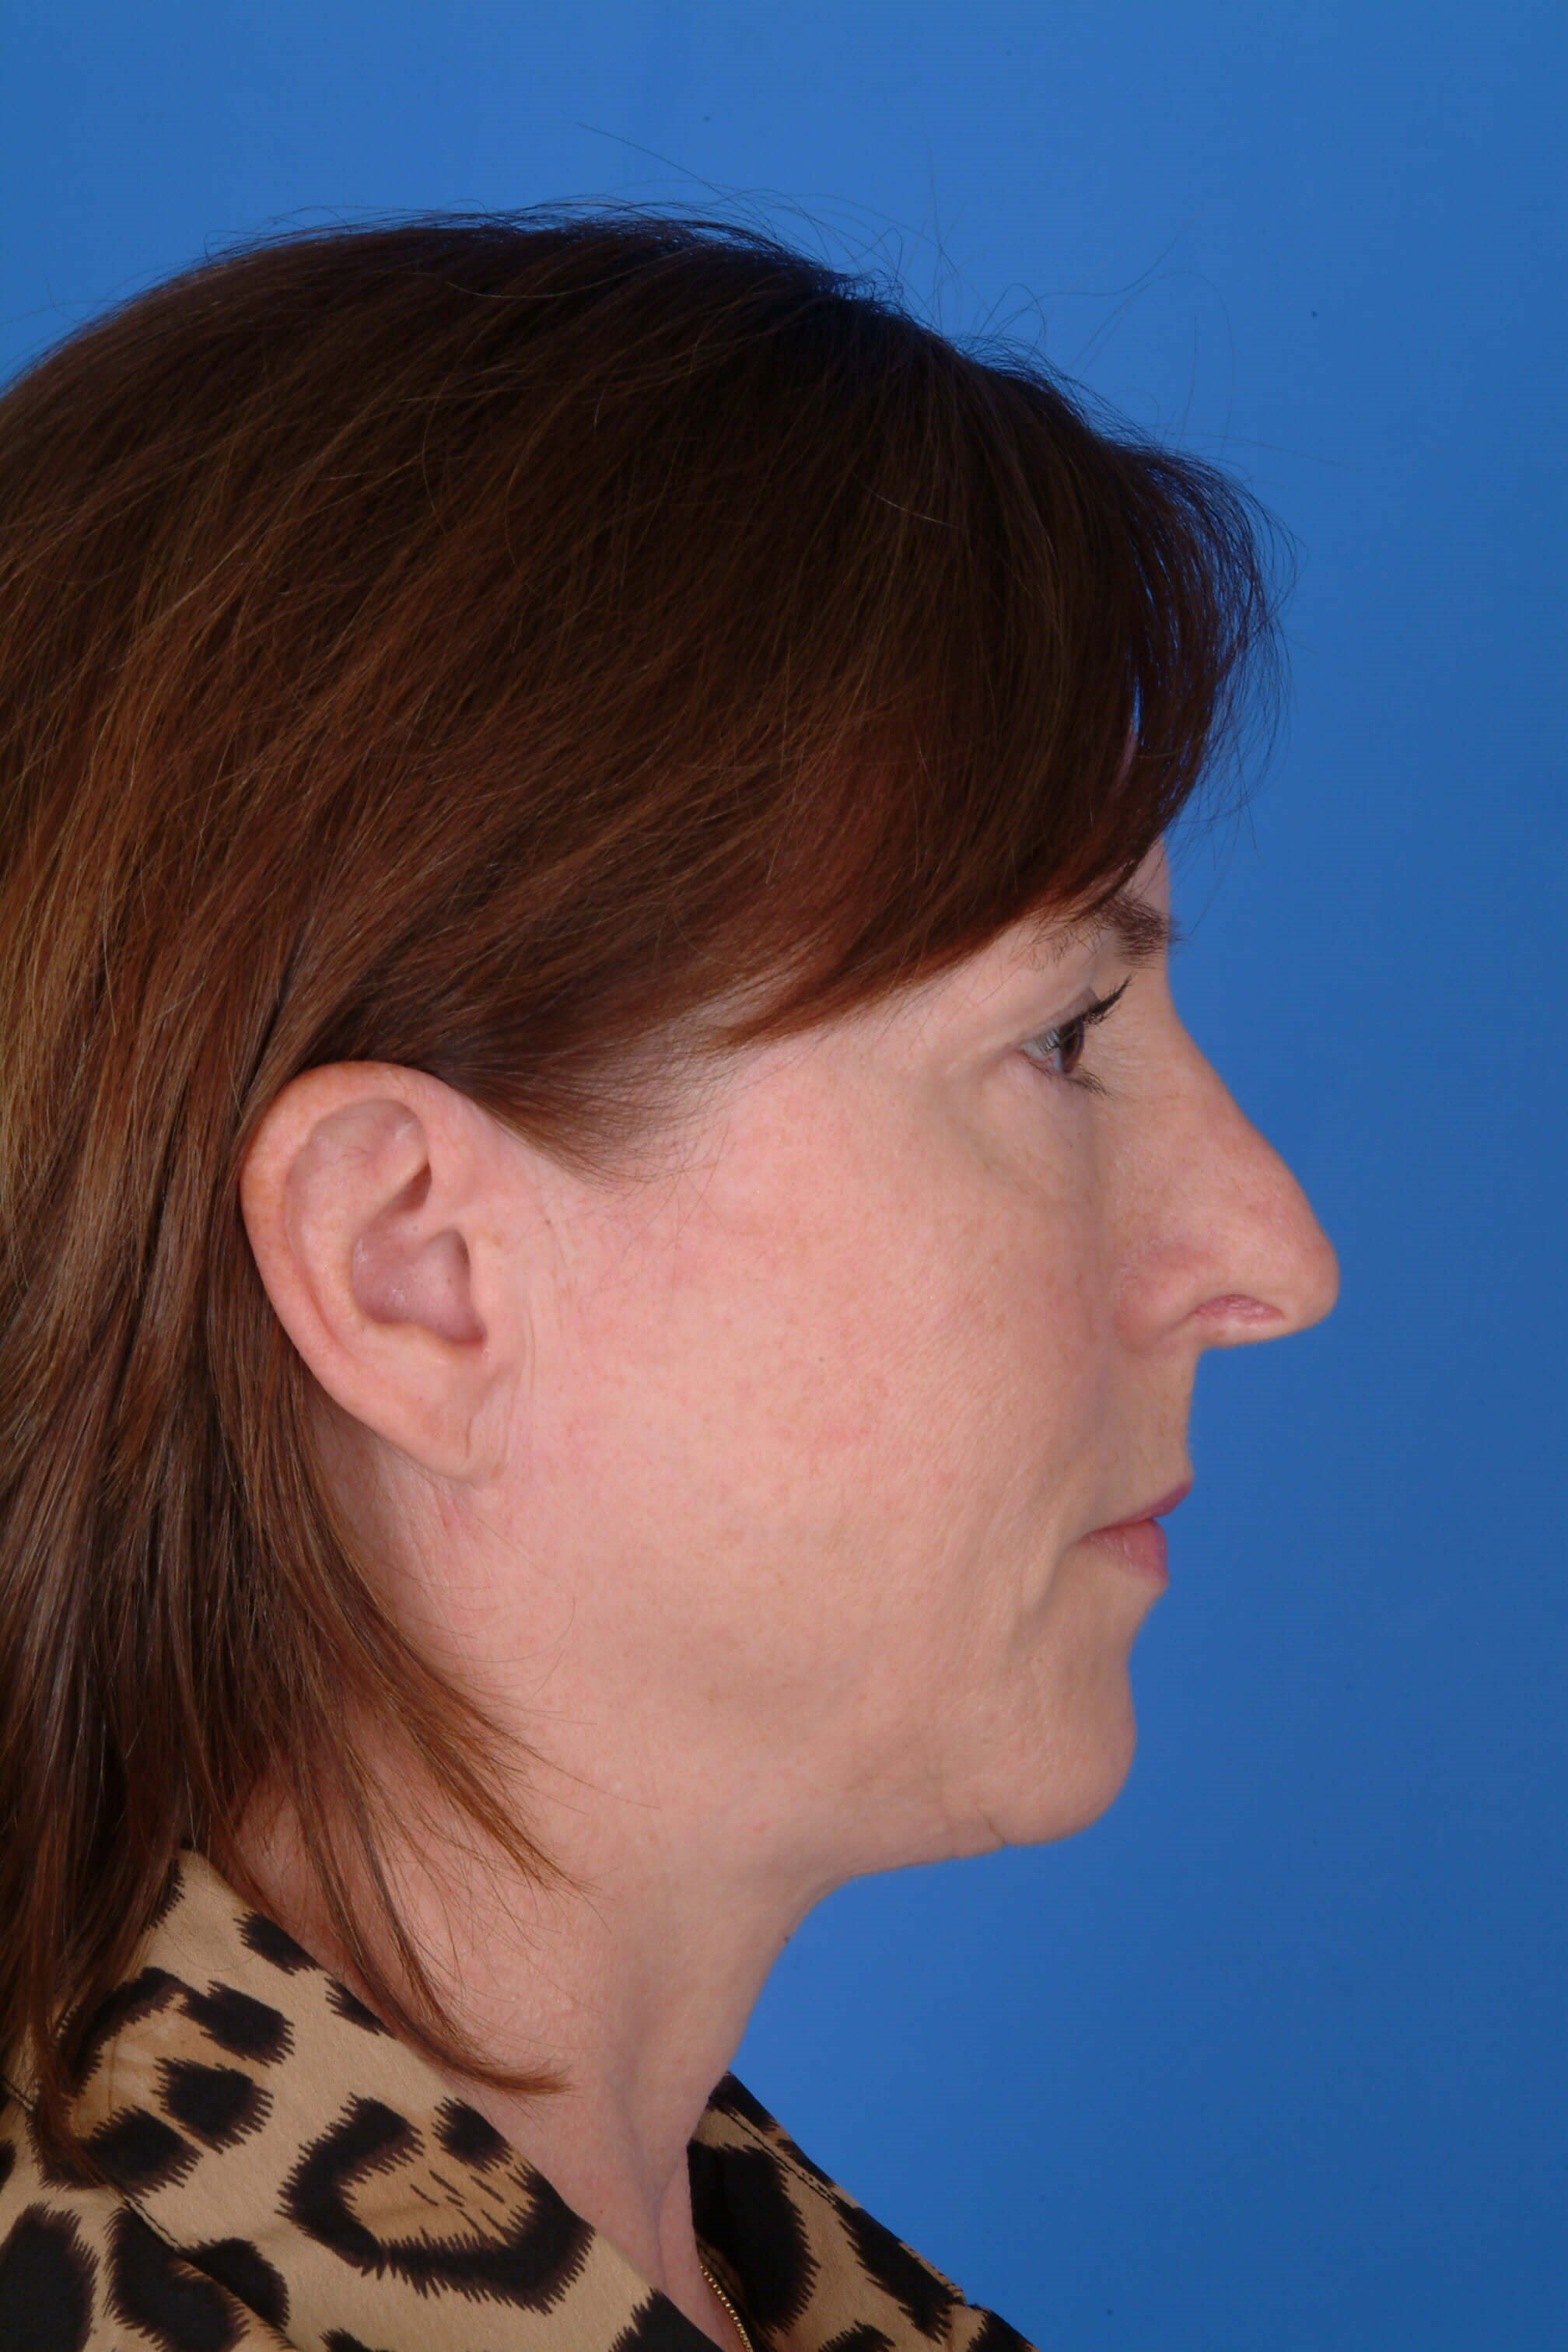 Profile View Before Revision Rhinoplasty